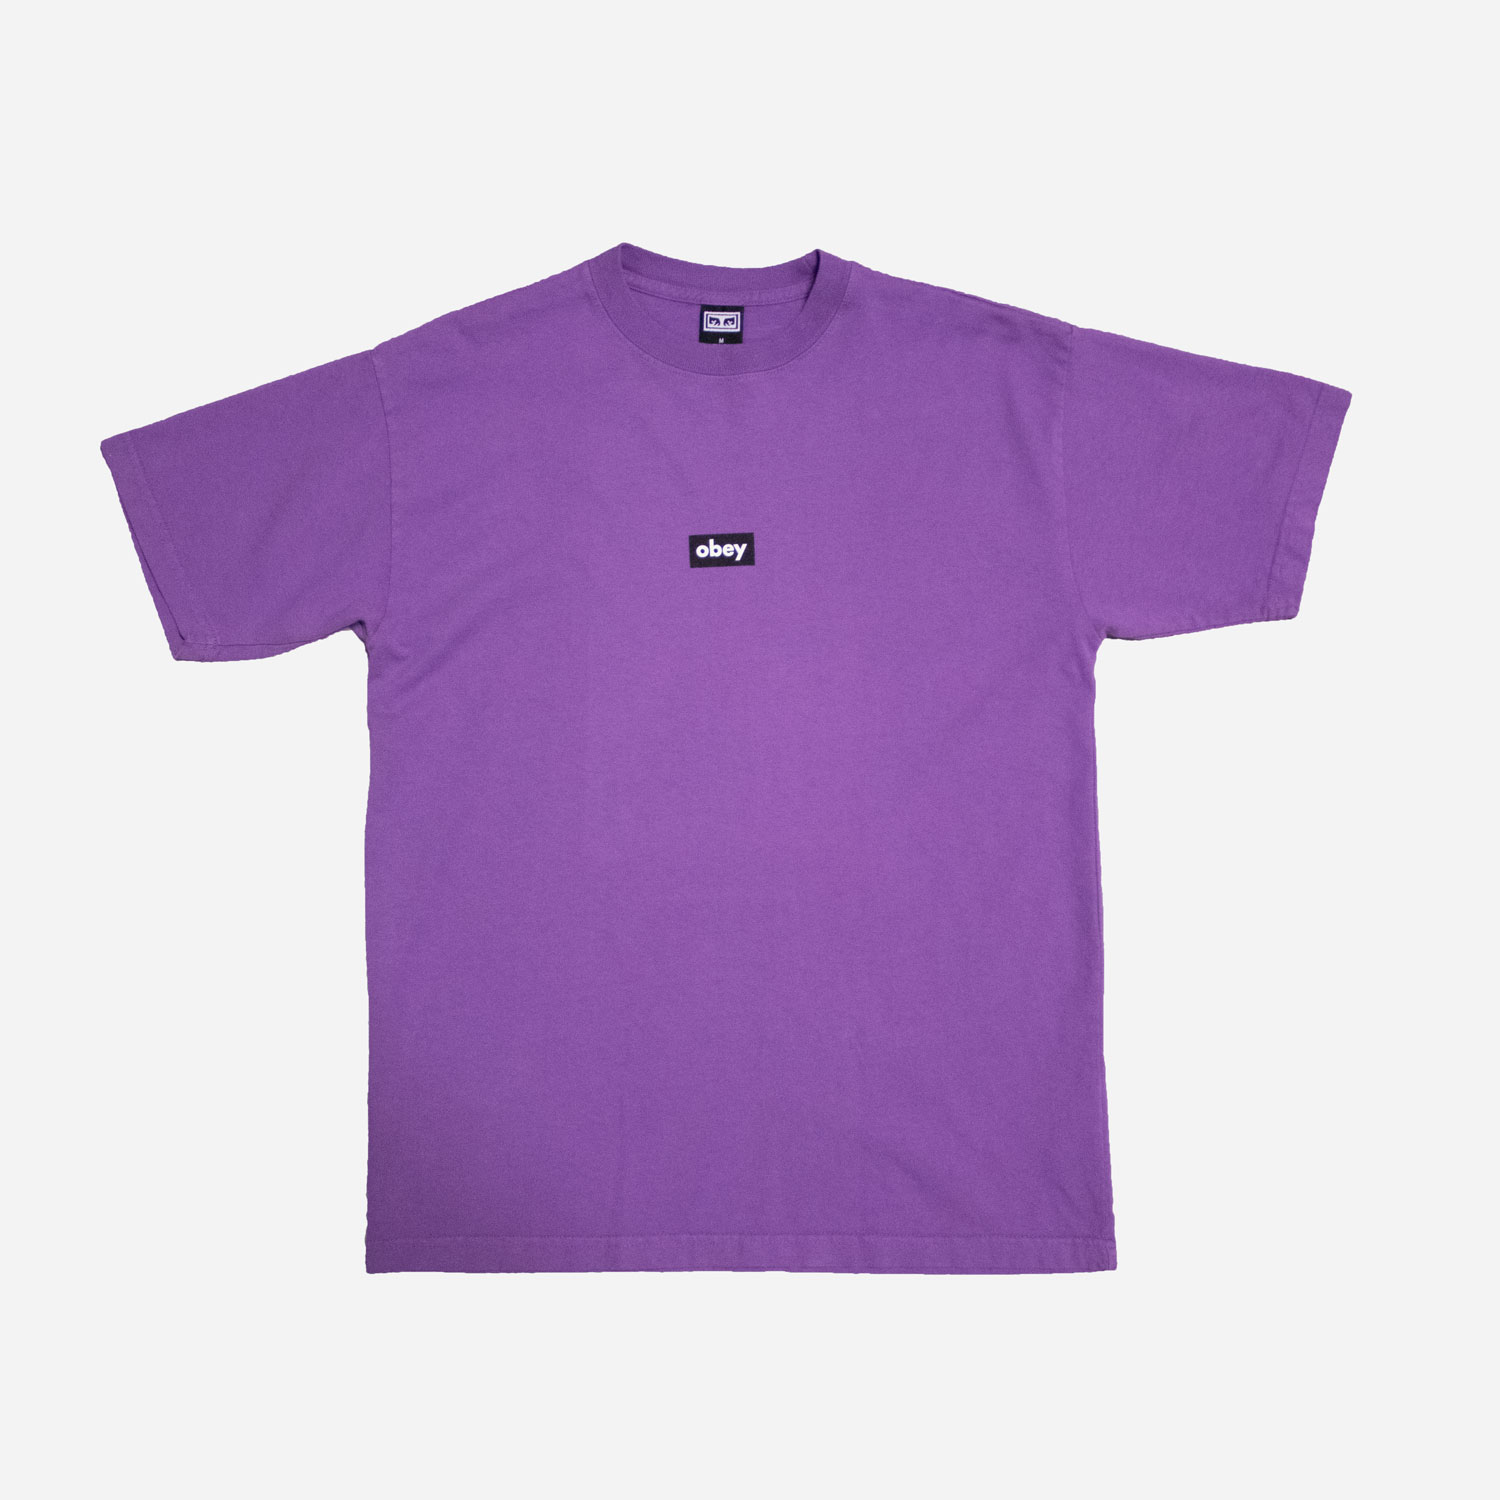 Obey Black Bar Tee - Orchid 0